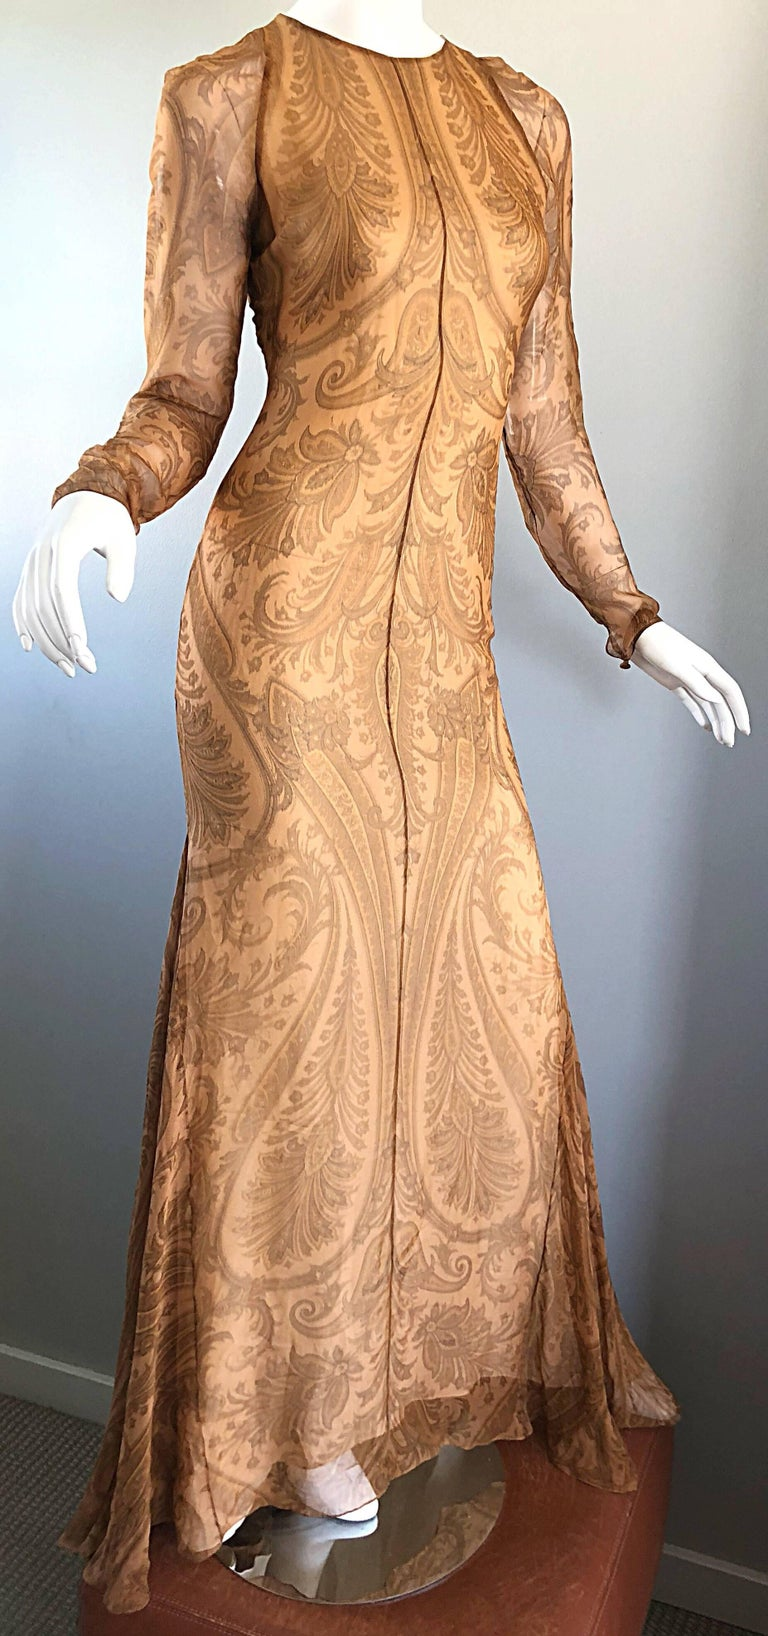 Sensational 1990s Bill Blass Couture Nude Silk Chiffon Paisley Vintage 90s Gown  For Sale 1